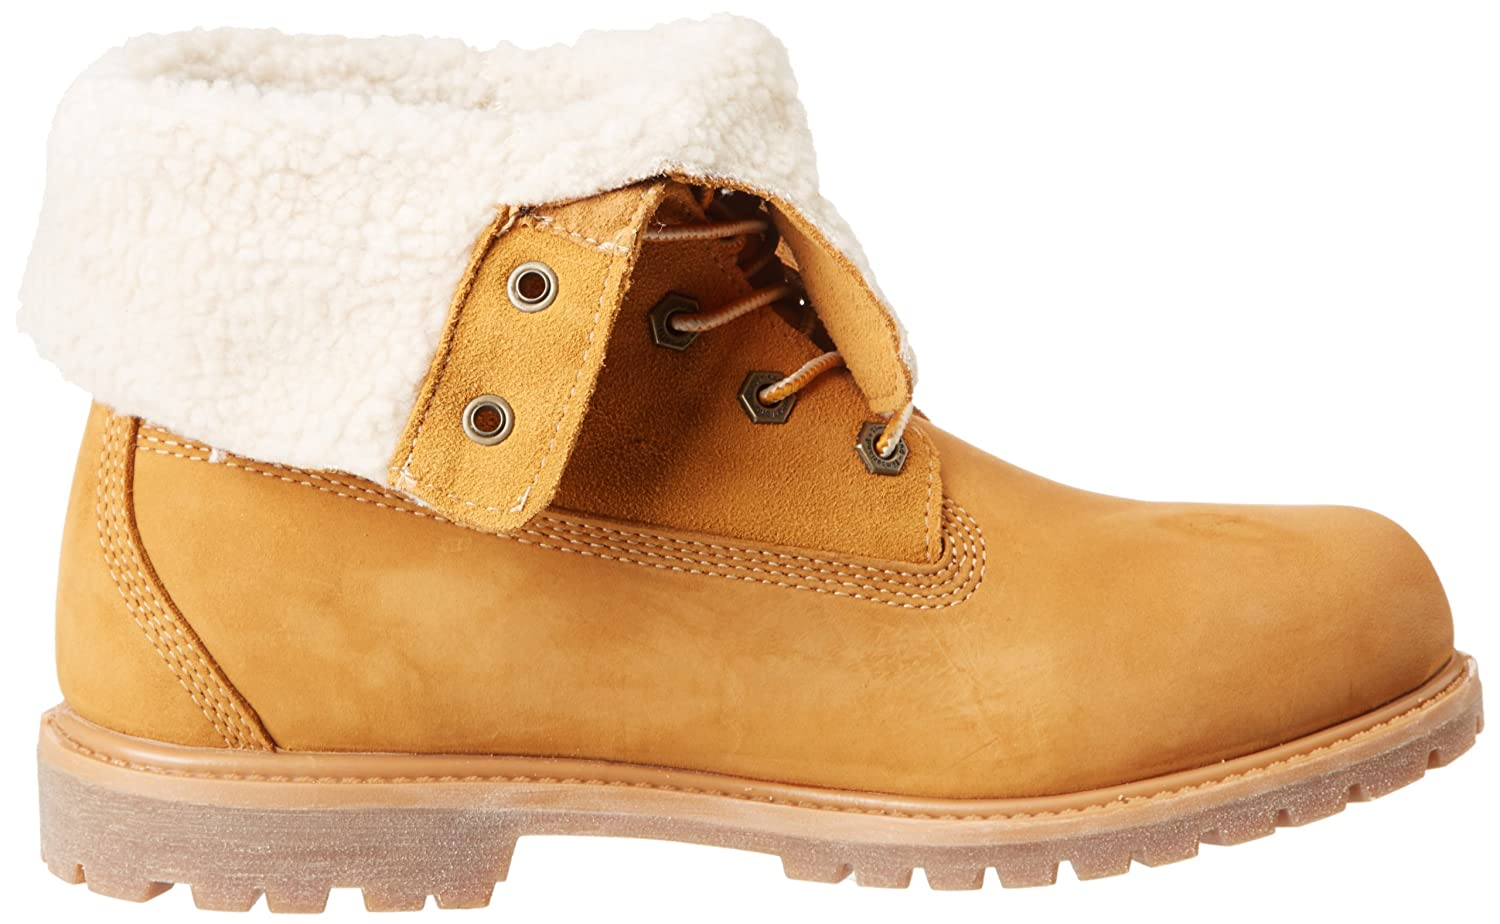 Timberland Authentics Teddy Fleece Water Proof Fold Down, Women's Boots: Amazon.co.uk: Shoes & Bags